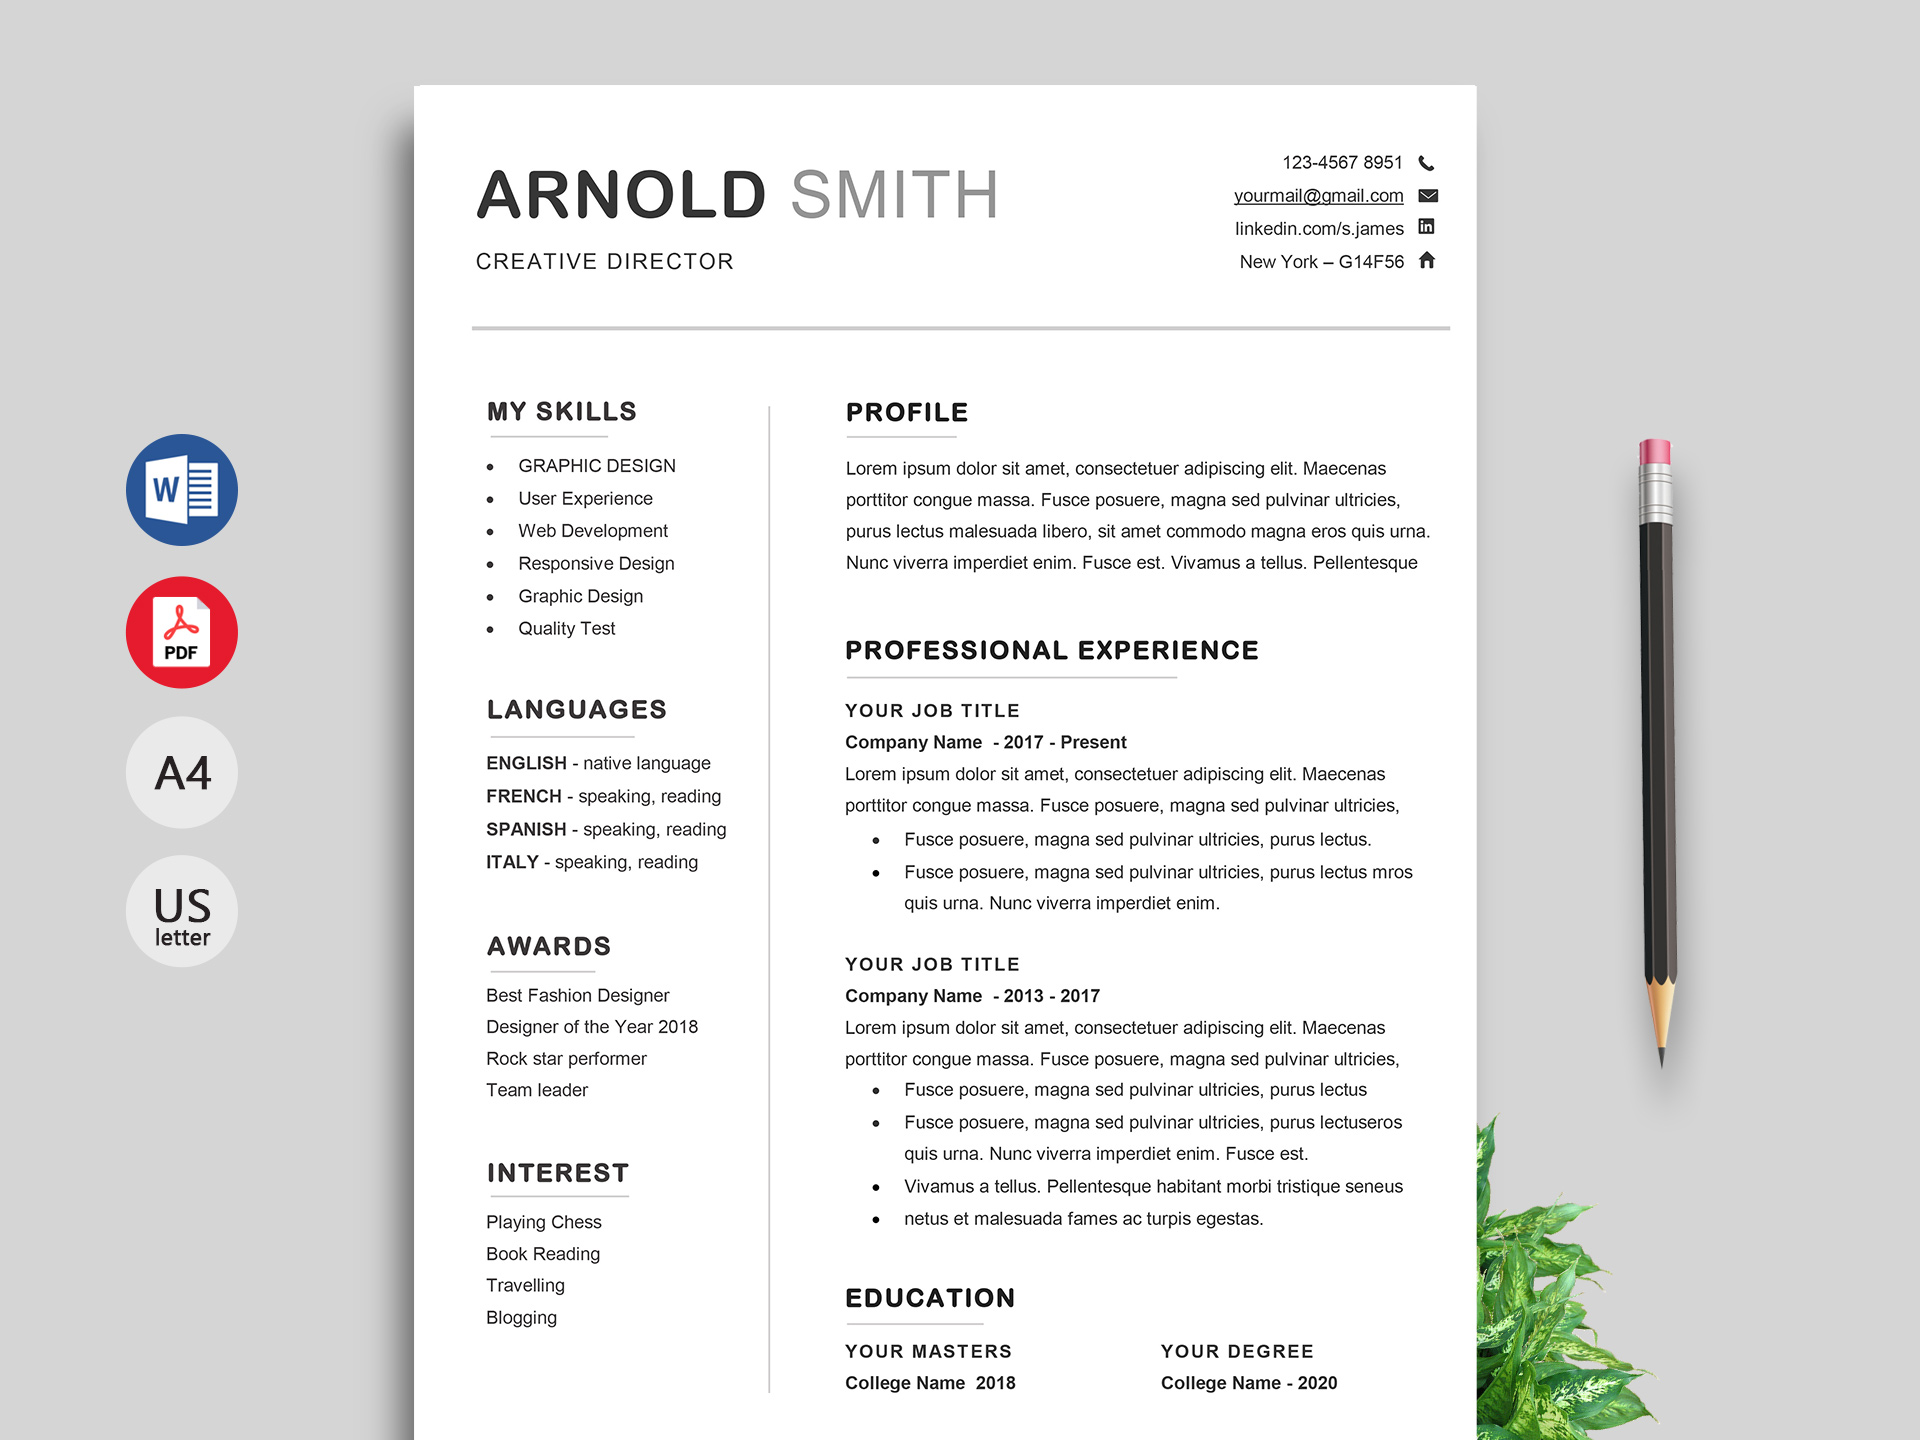 creative resume cv template free resumekraft templates editable word standard format for Resume Free Creative Resume Templates Editable